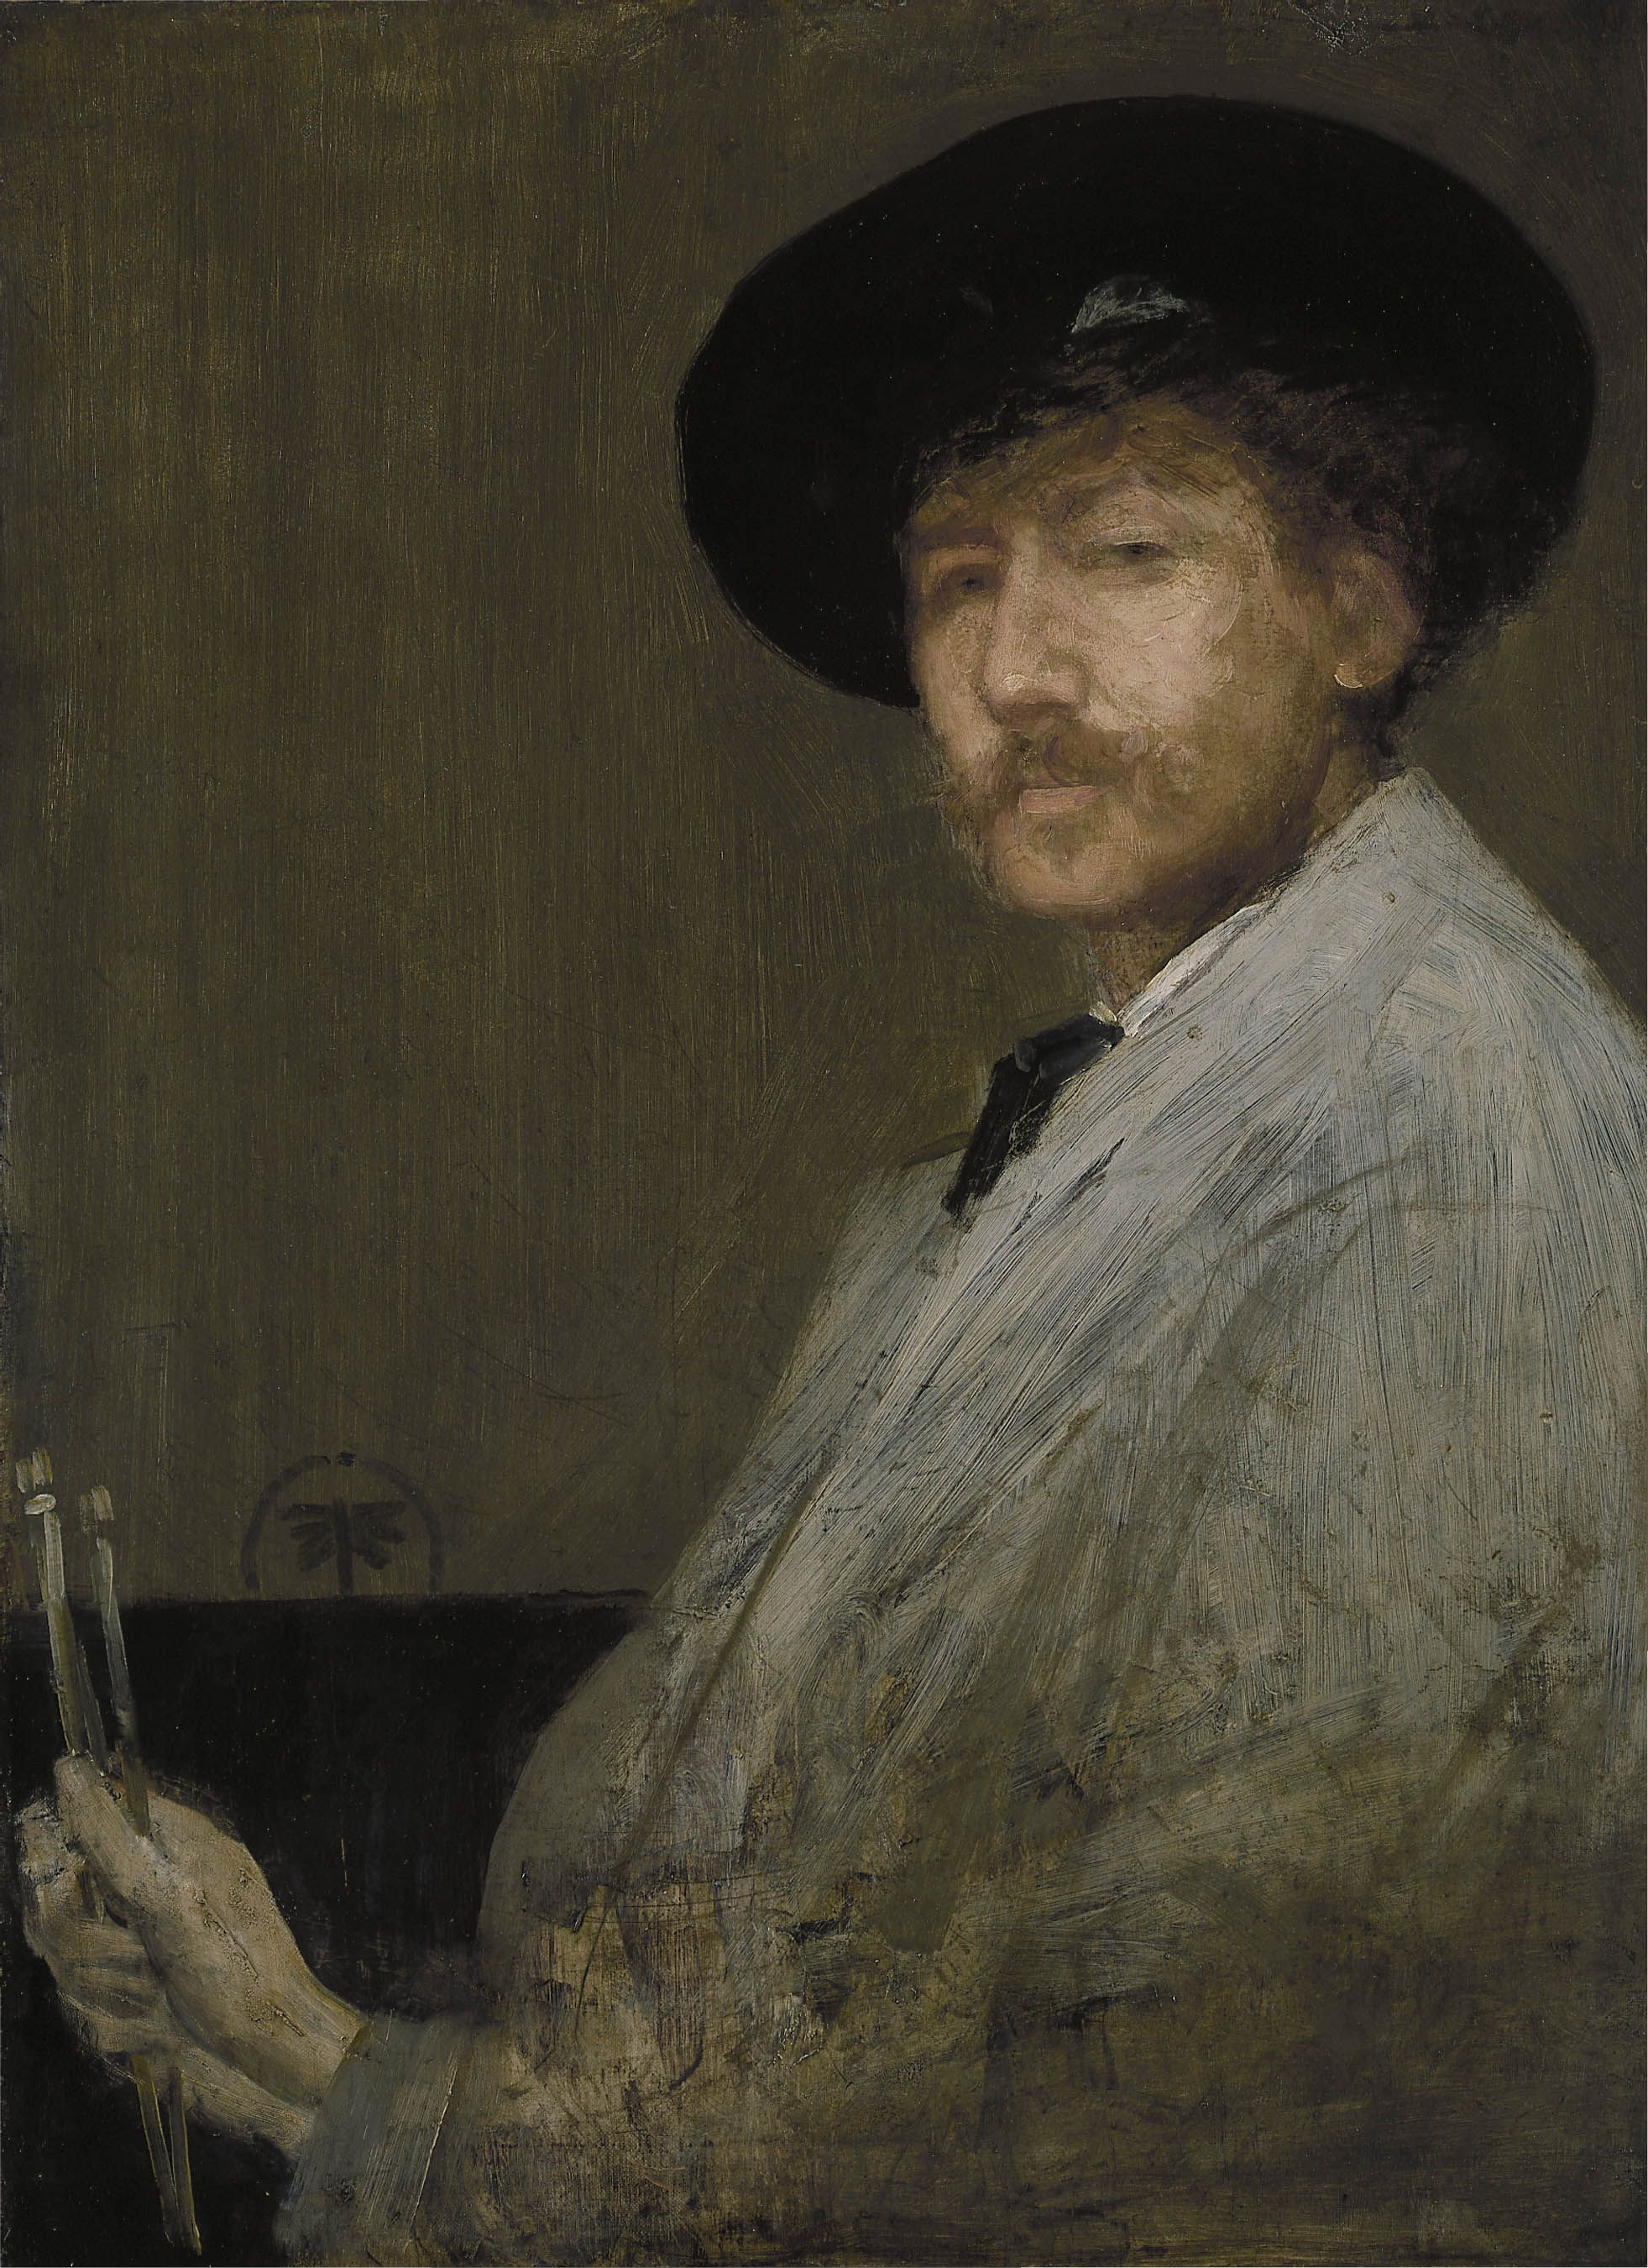 James Abbott McNeill Whistler, Arrangement in Gray: Portrait of the Painter, c. 1872, oil on canvas